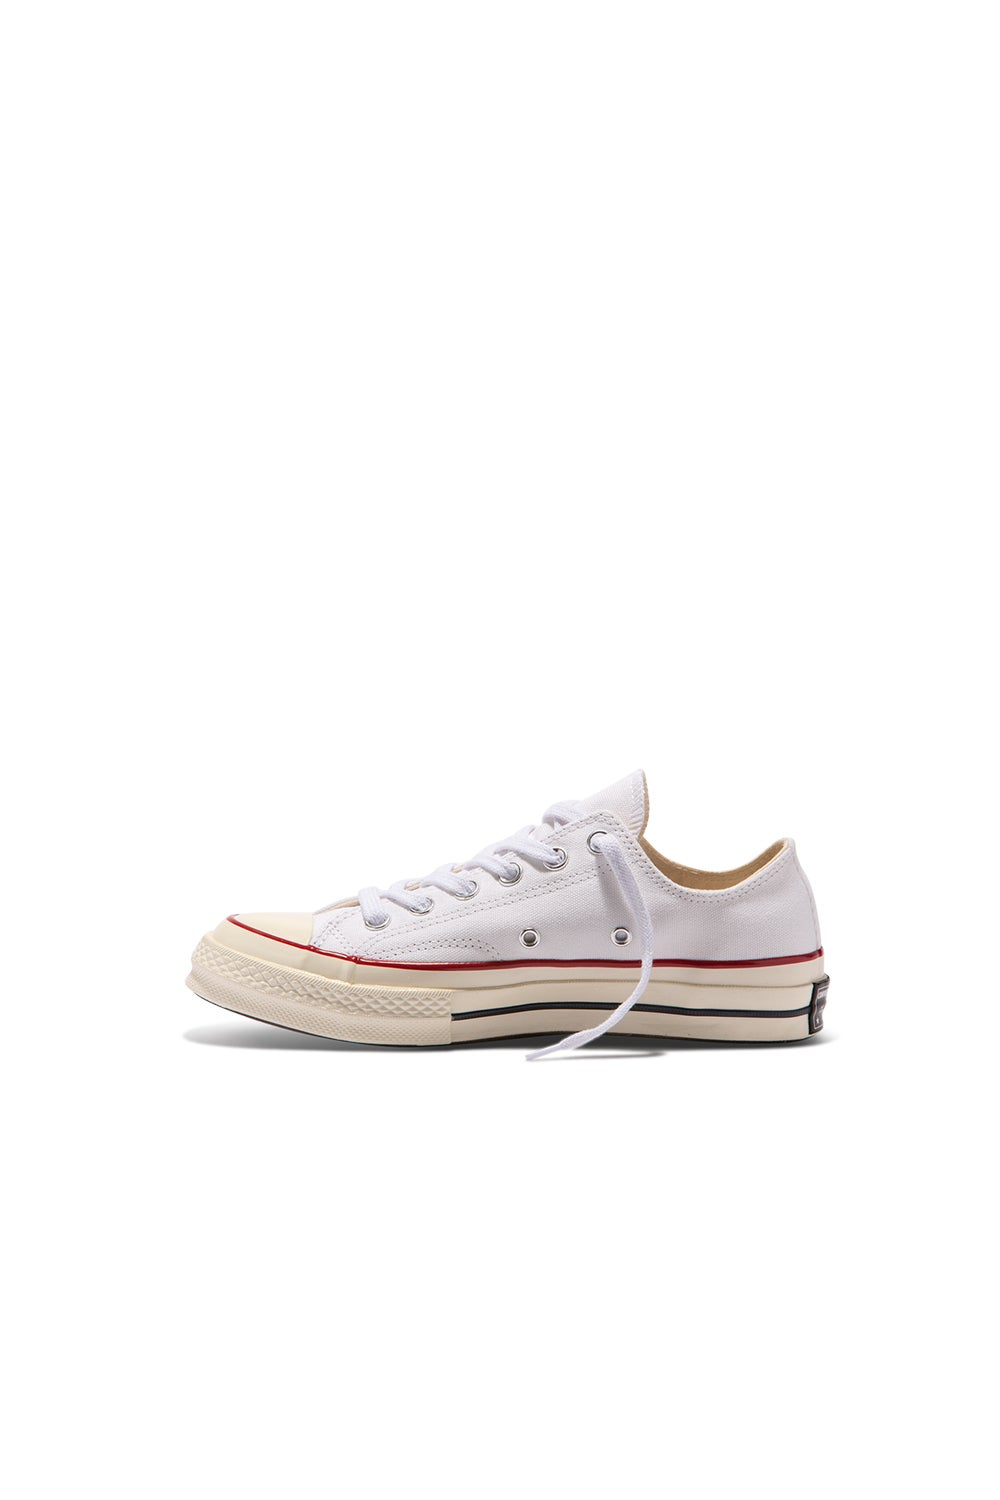 Converse Chuck Taylor All Star 70 Low White